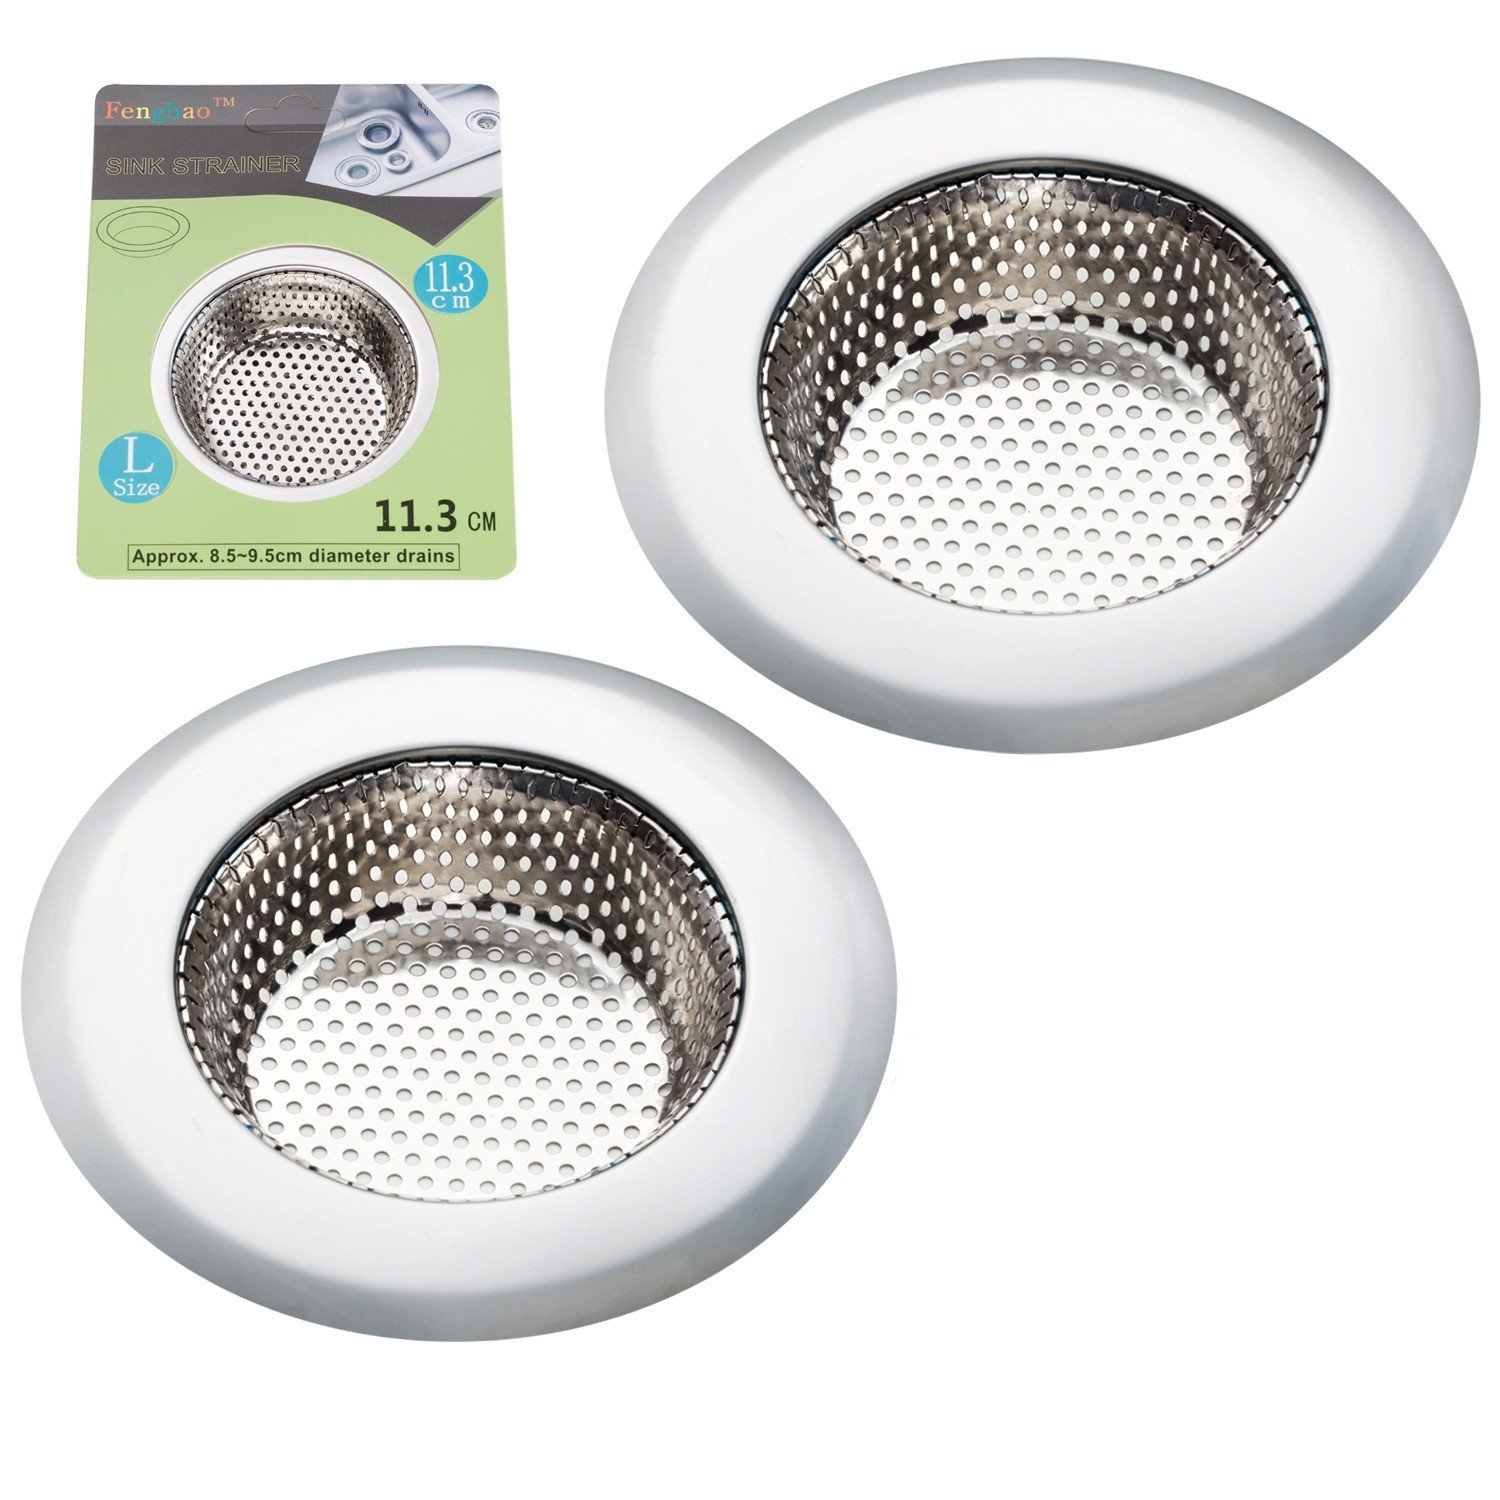 "Fengbao 2PCS Kitchen Sink Strainer - Stainless Steel, Large Wide Rim 4.5"" Diameter"